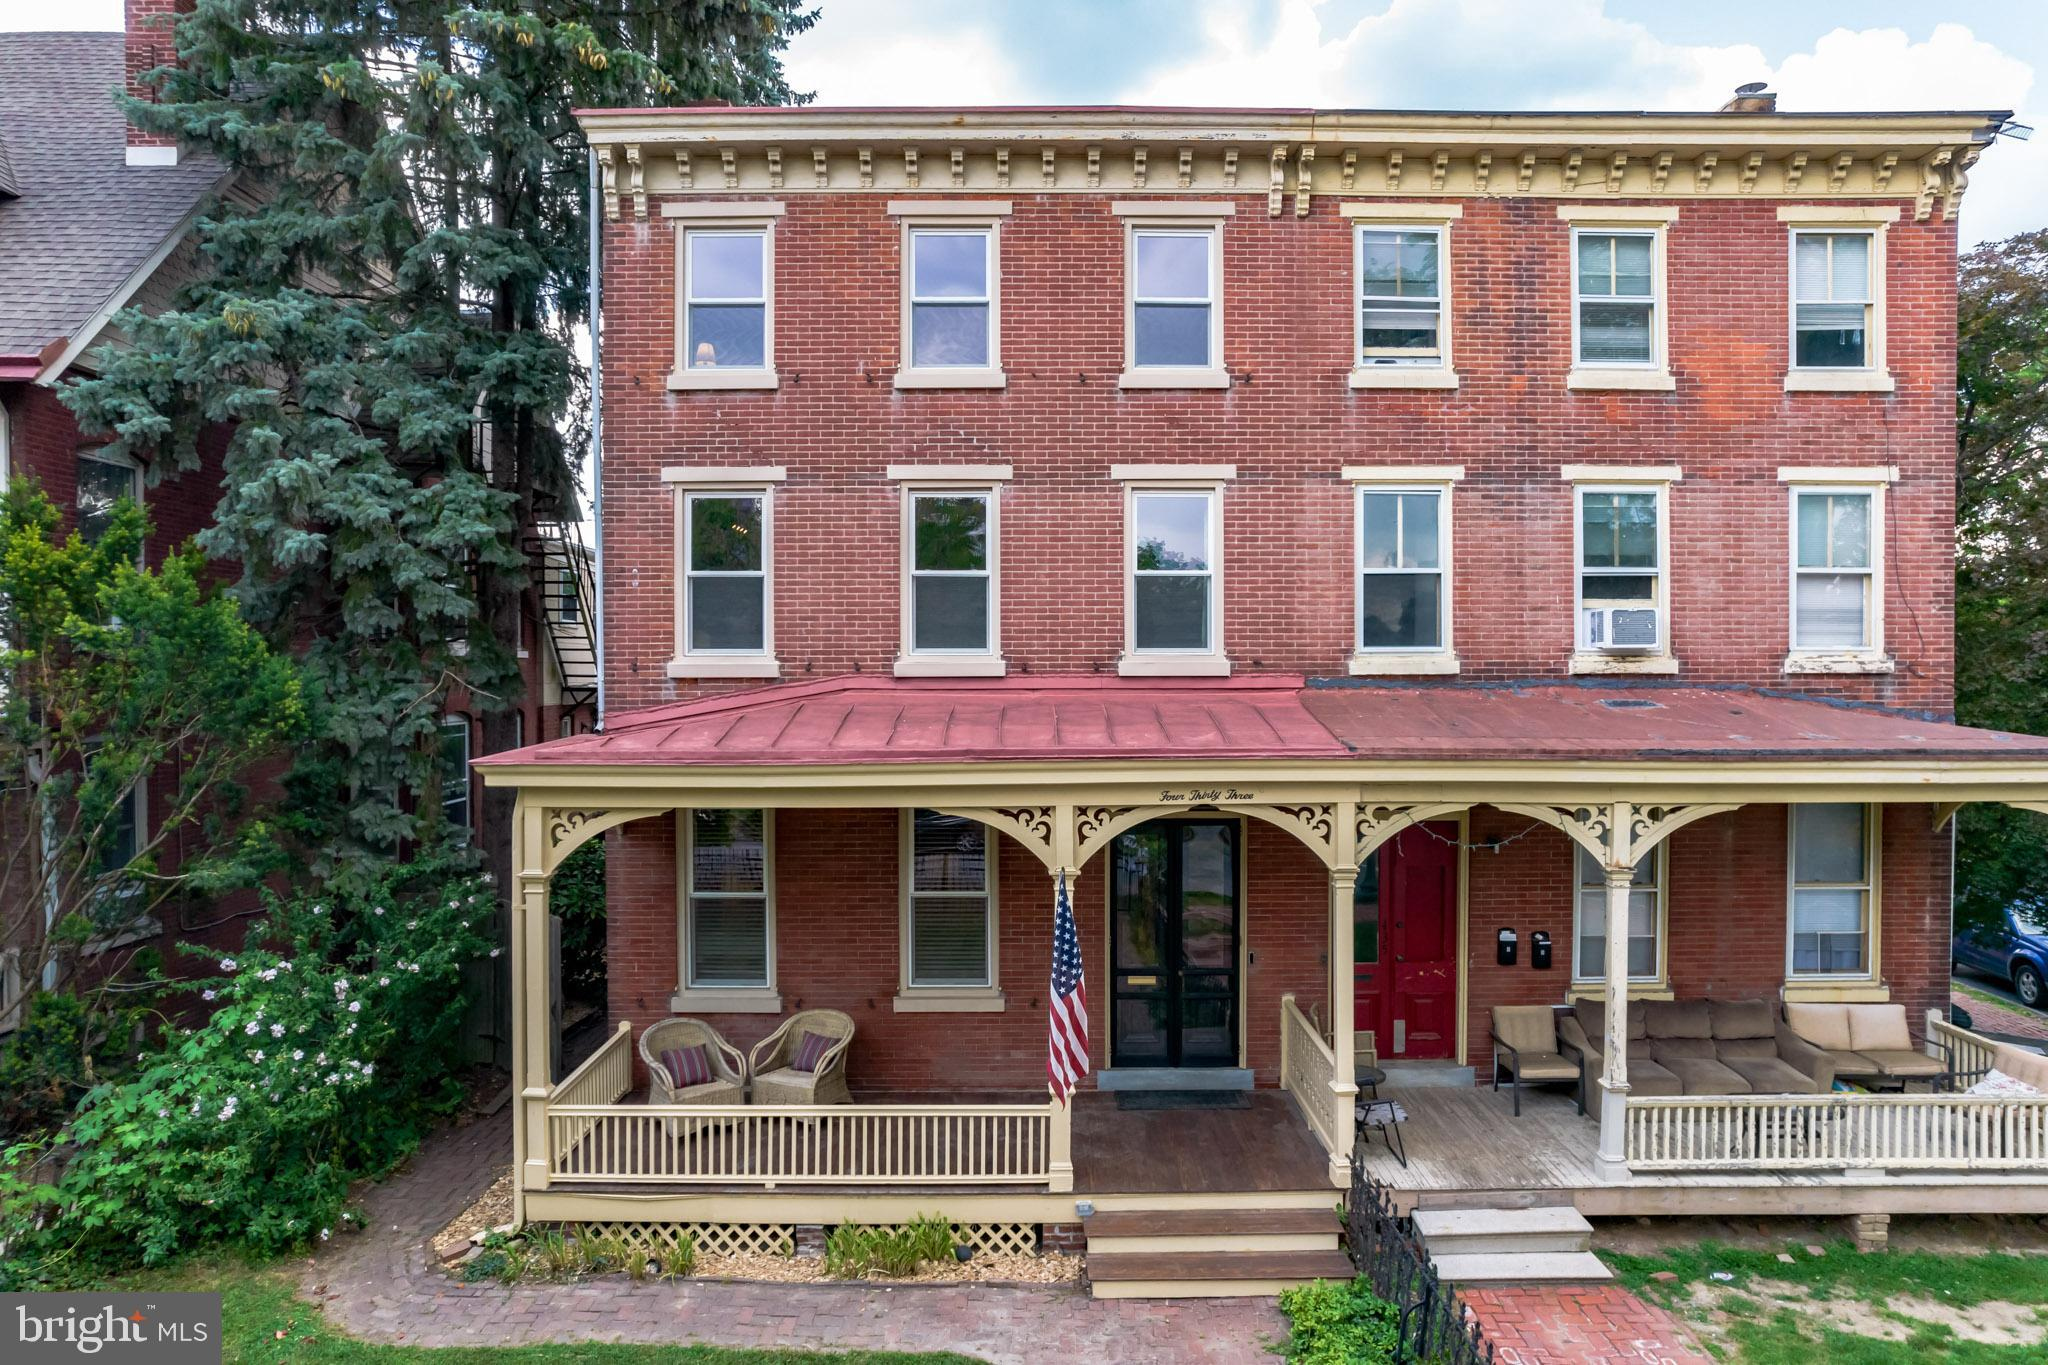 This stunning 1875 3-story brick twin traditional home is located in the heart of West Chester Boro! With over 2,300 square feet of living space, 4 Bedrooms and 2½ Baths, this home blends charming architectural features like hardwood flooring and built-in cabinets and bookcases with modern updates of such as appliances and fixtures. The flow of this home is perfect for living and entertaining! Large windows and high ceilings with exquisite mill work make this home bright and airy. The covered front porch welcomes you into a large foyer.  From the foyer you enter the formal living room which flows naturally into the adjacent dining room.  Off the dining room is access to an enclosed porch, currently being used as an office.  Walking through the dining room you will find the large kitchen which is complete with wood cabinetry, leathered granite countertops, recessed lighting, and stainless-steel appliances. An updated powder room and mudroom room with French doors to private back yard round of this floor. Upstairs, the primary bedroom has an en-suite bath and can also be accessed through the second stairway. 1 additional generously sized bedroom and a full upgraded bath round out the 2nd floor. Along the 3rd floor are two additional bedrooms.  Downstairs the basement is finished and offers lots of extra flex space.  Also in the basement is the laundry room and plenty of space for additional storage.  Out back there is a large detached 2 car garage and off-street parking for one additional car, a rarity in the Boro!   The fully fenced in backyard with a large patio and beautifully landscaped gardens is perfect for entertaining. Short walk to the center of town, restaurants, parks, stores and more.  Schedule your private showing today!